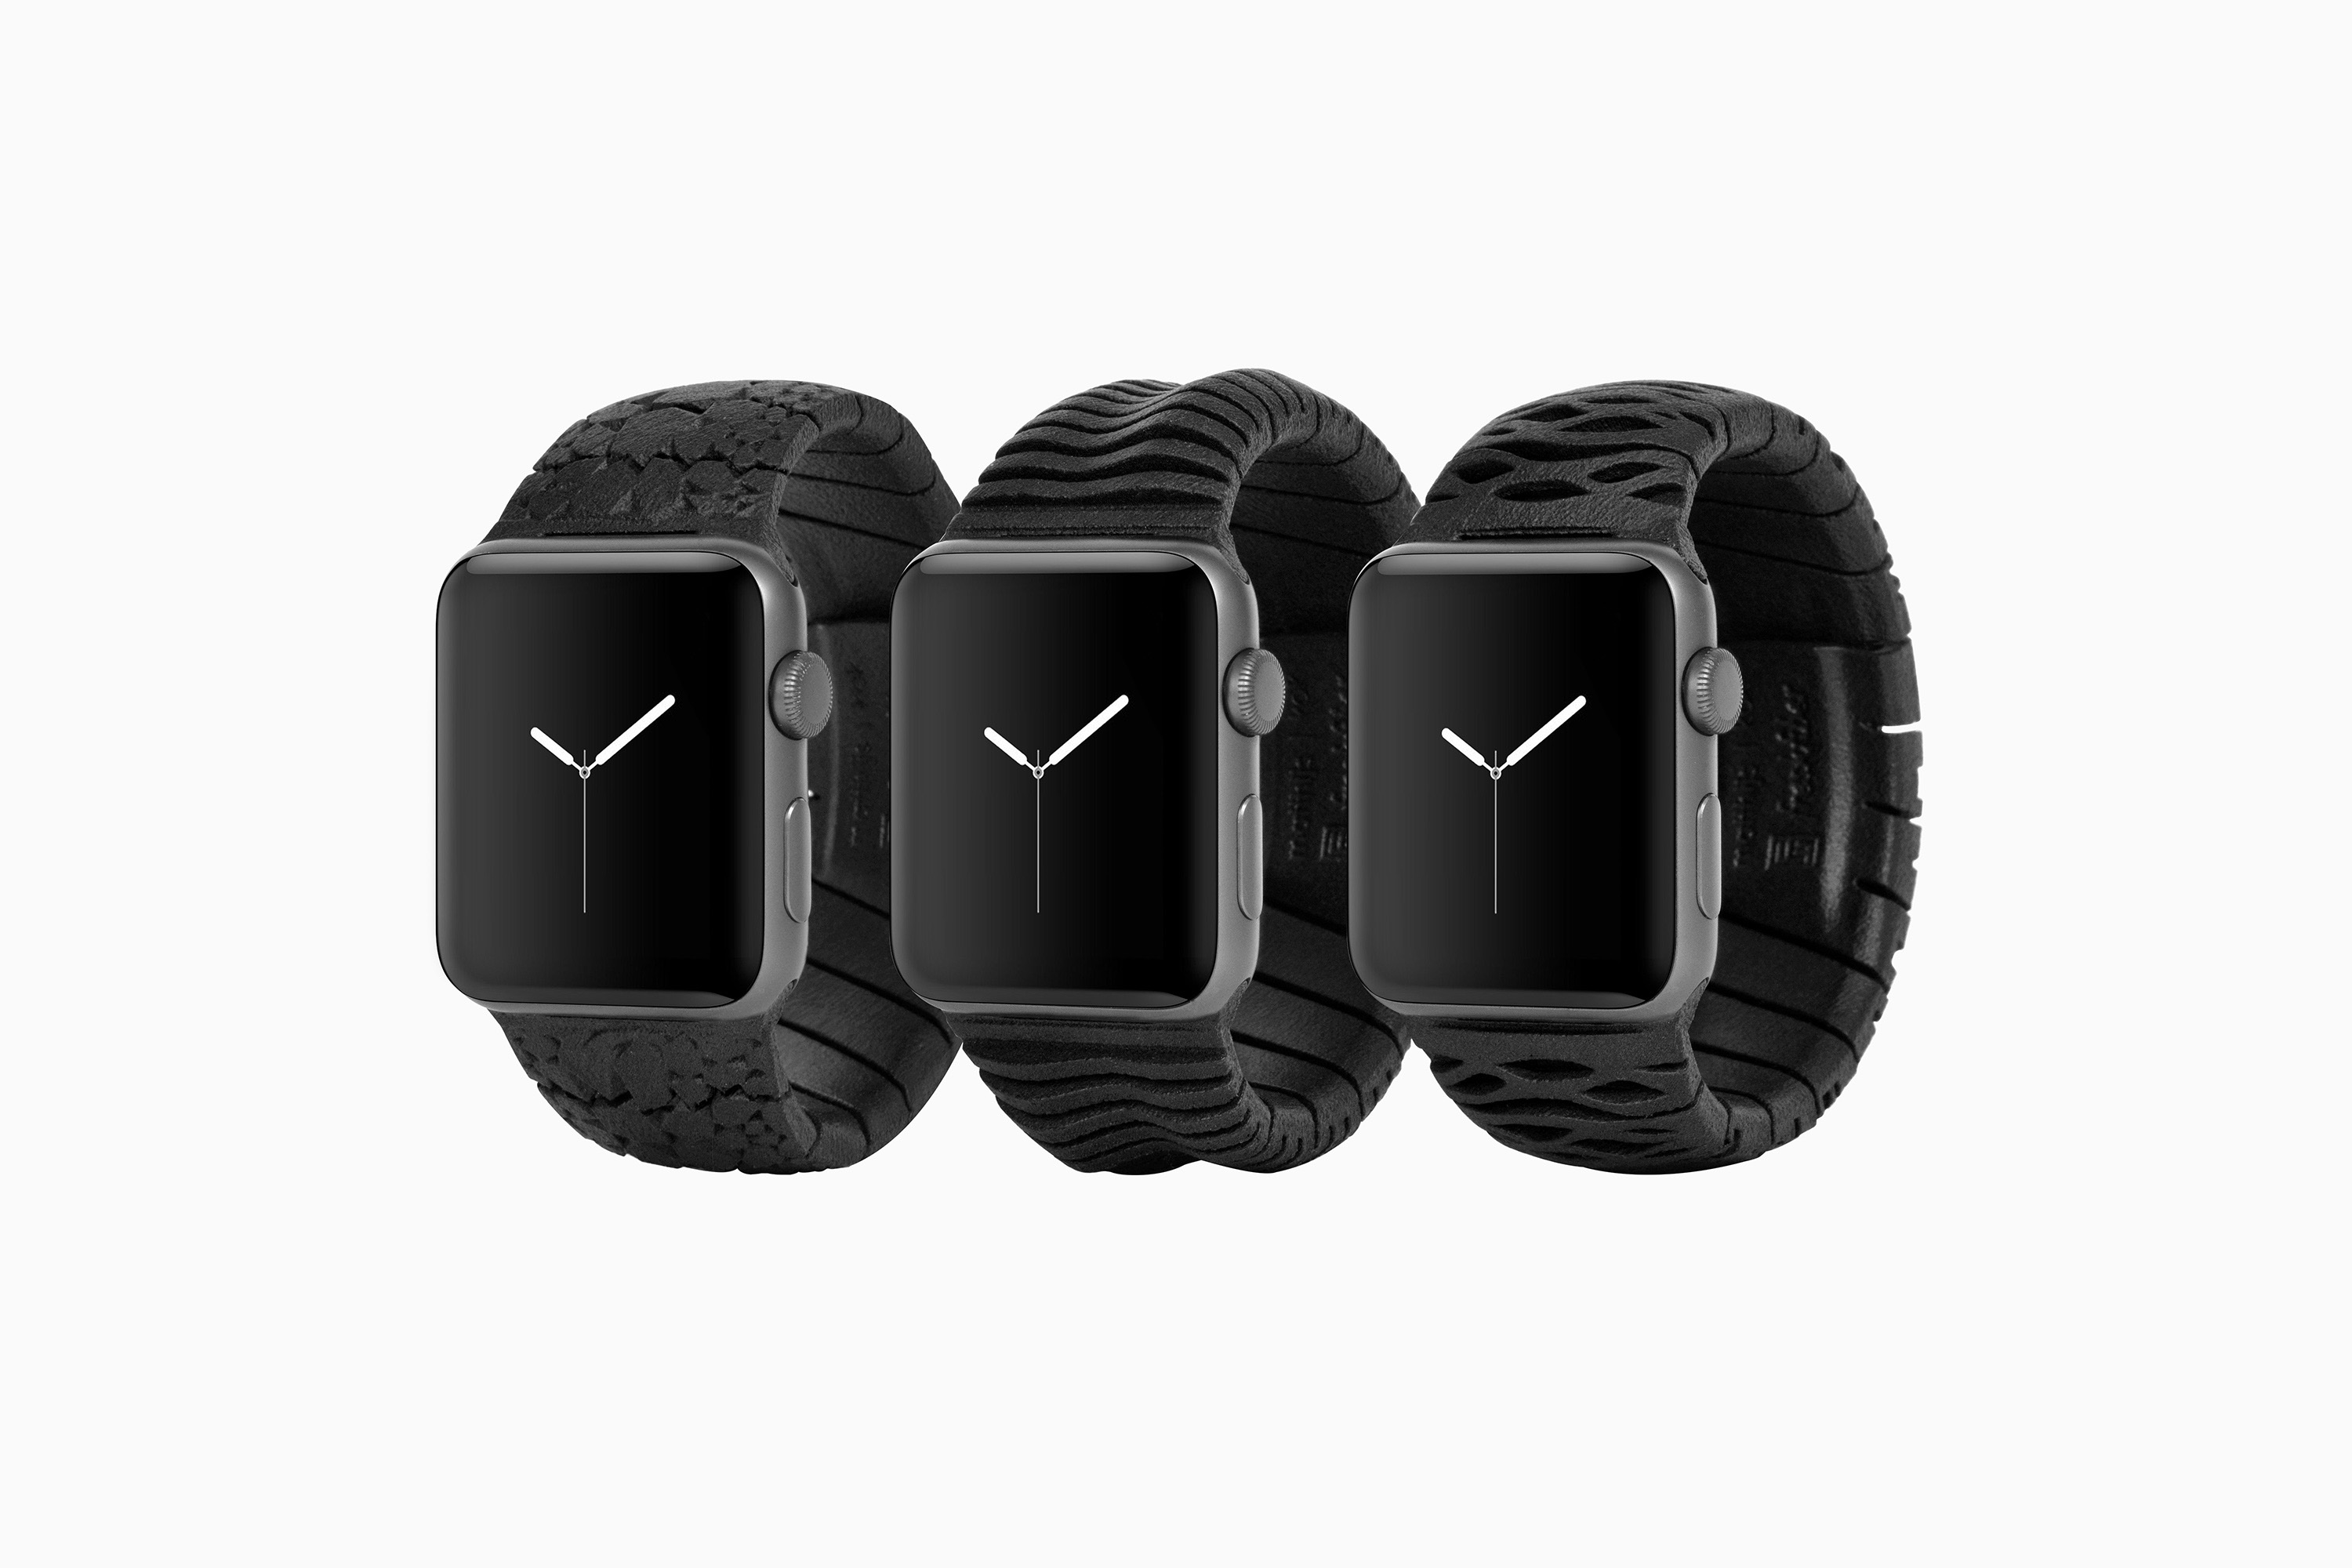 Freshfiber Apple Watch Bands, Design by Matthijs Kok for Freshfiber